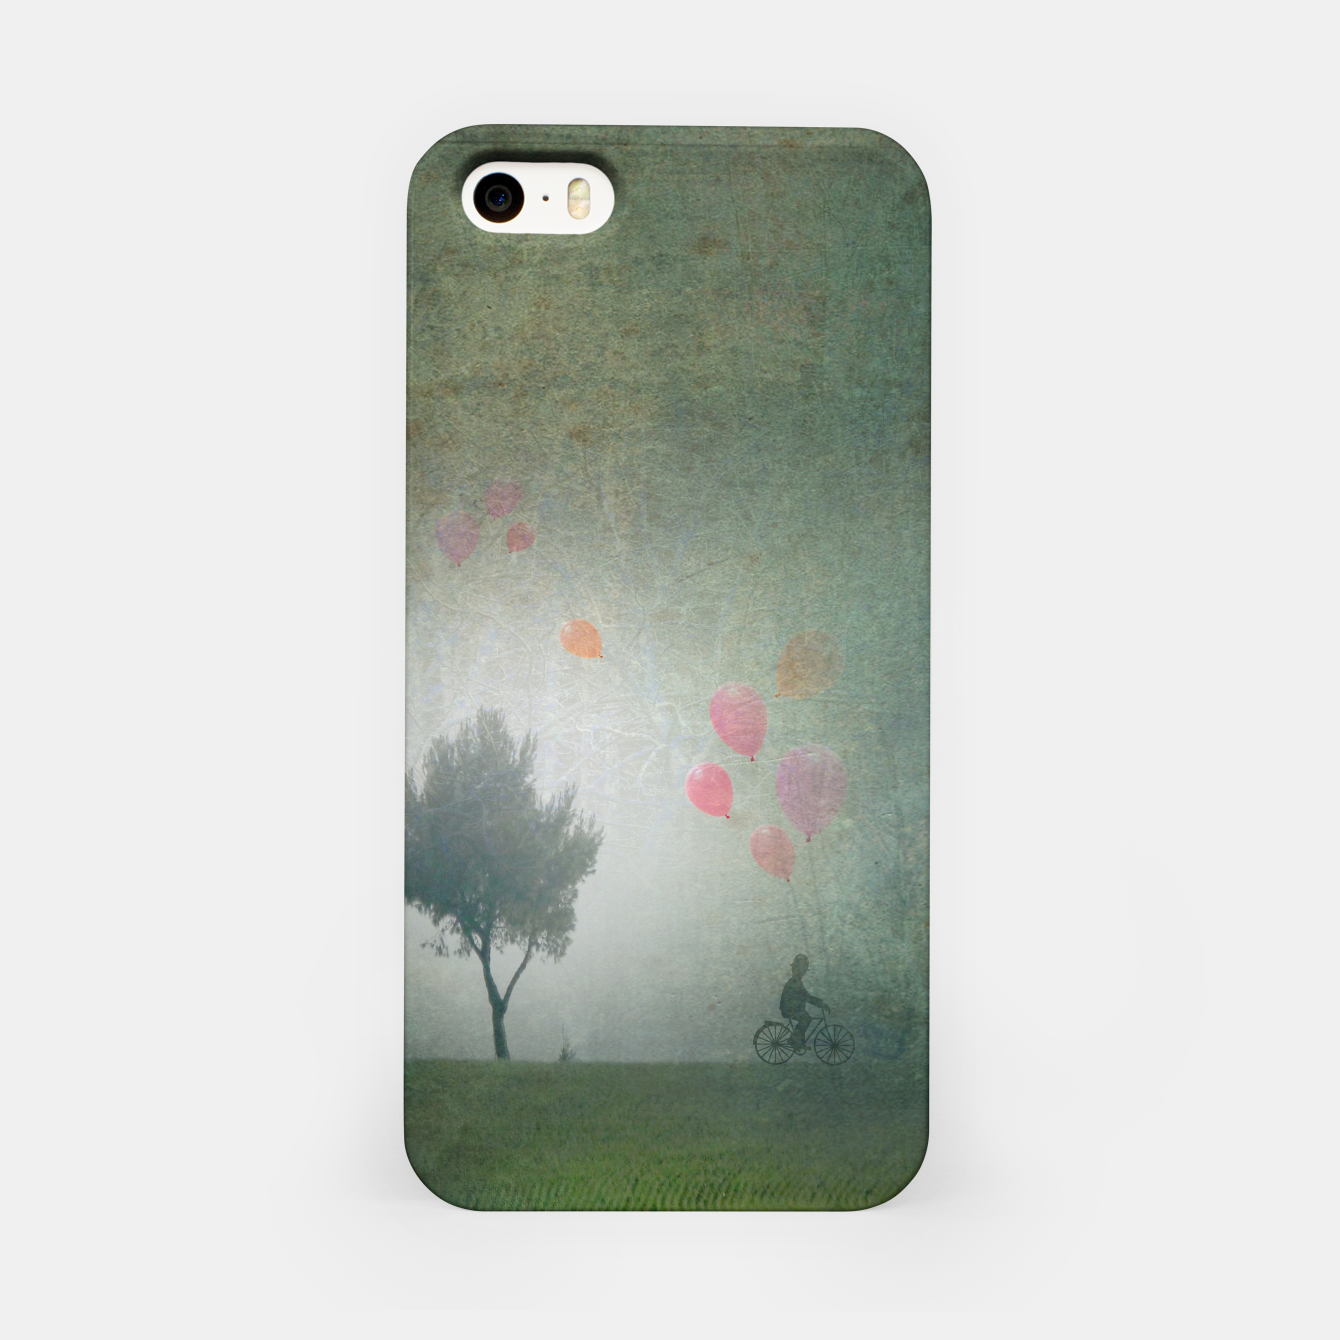 Foto The Loving Cyclist iPhone Case - Live Heroes